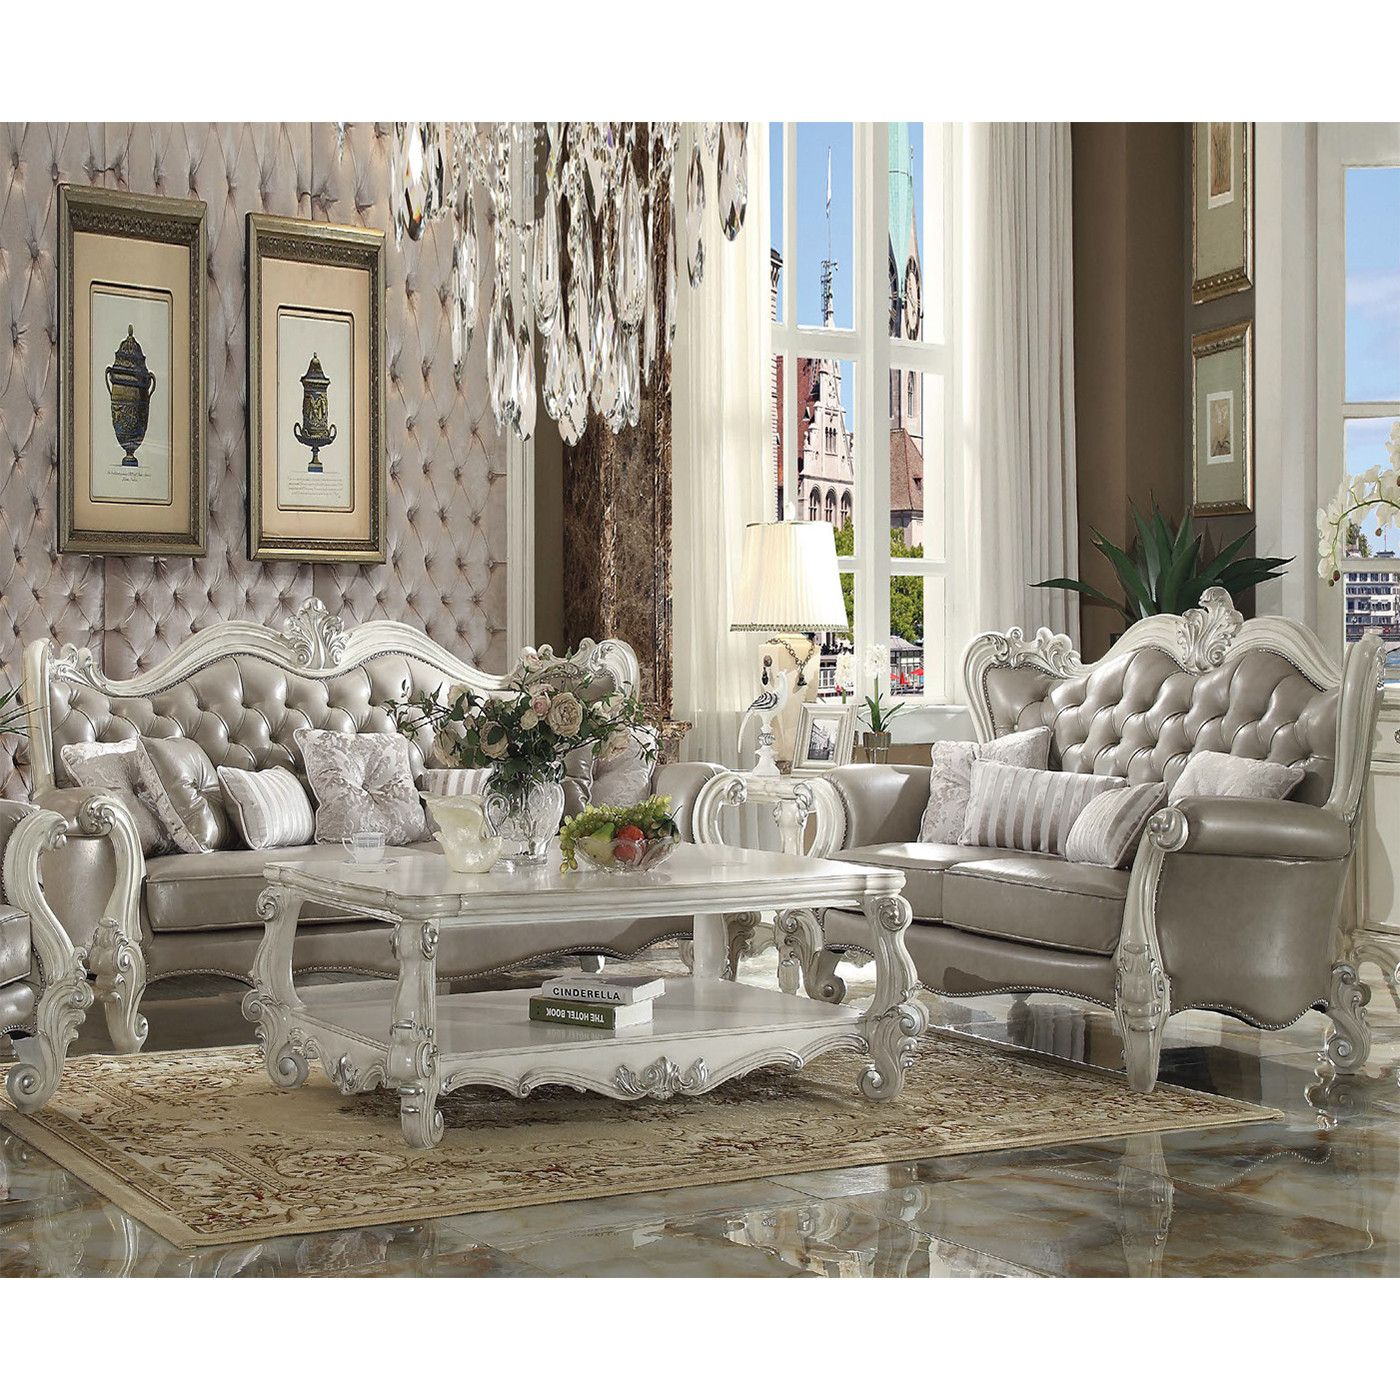 Acme Furniture 52125a Versailles Sofa Tufted Vintage Gray